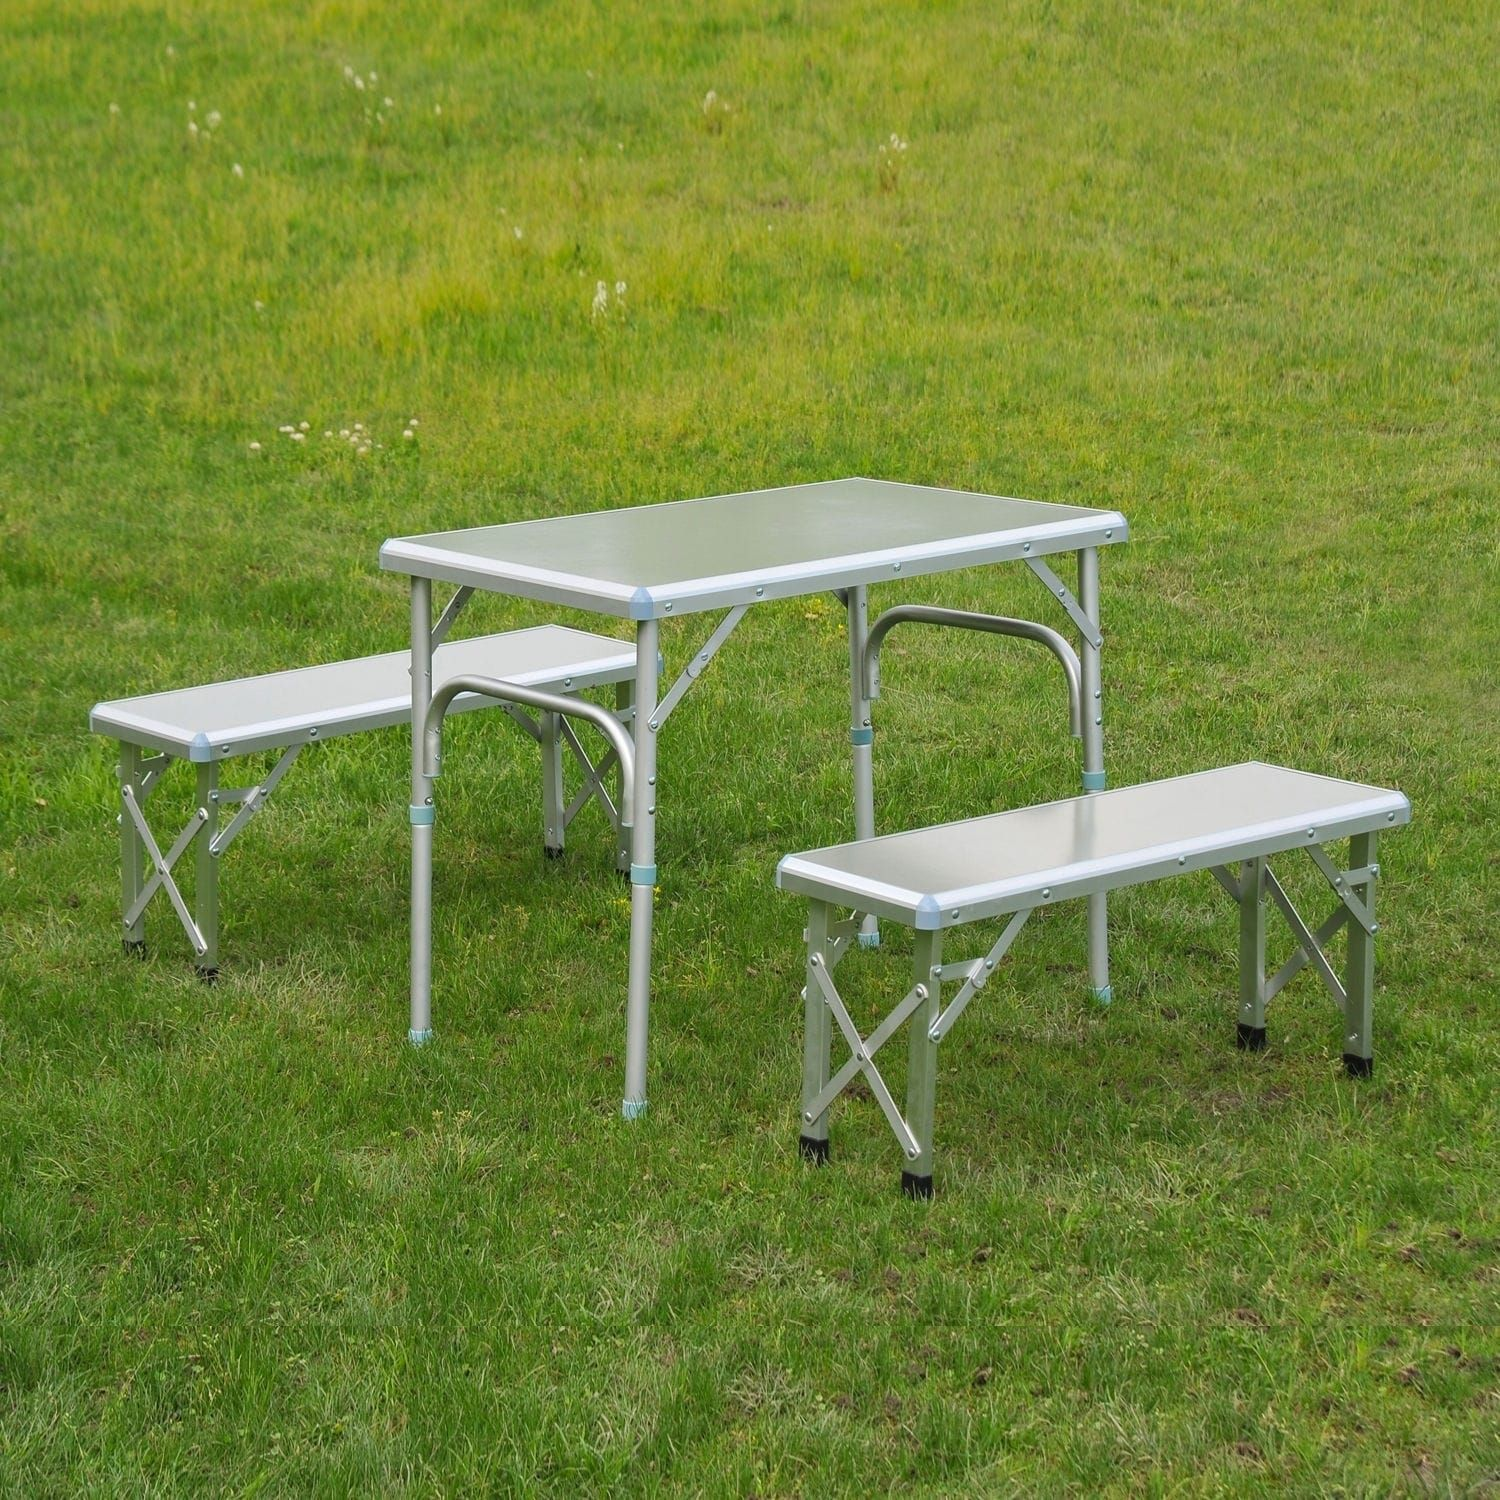 Outsunny Portable Outdoor Picnic Table with Folding Bench Seats ...